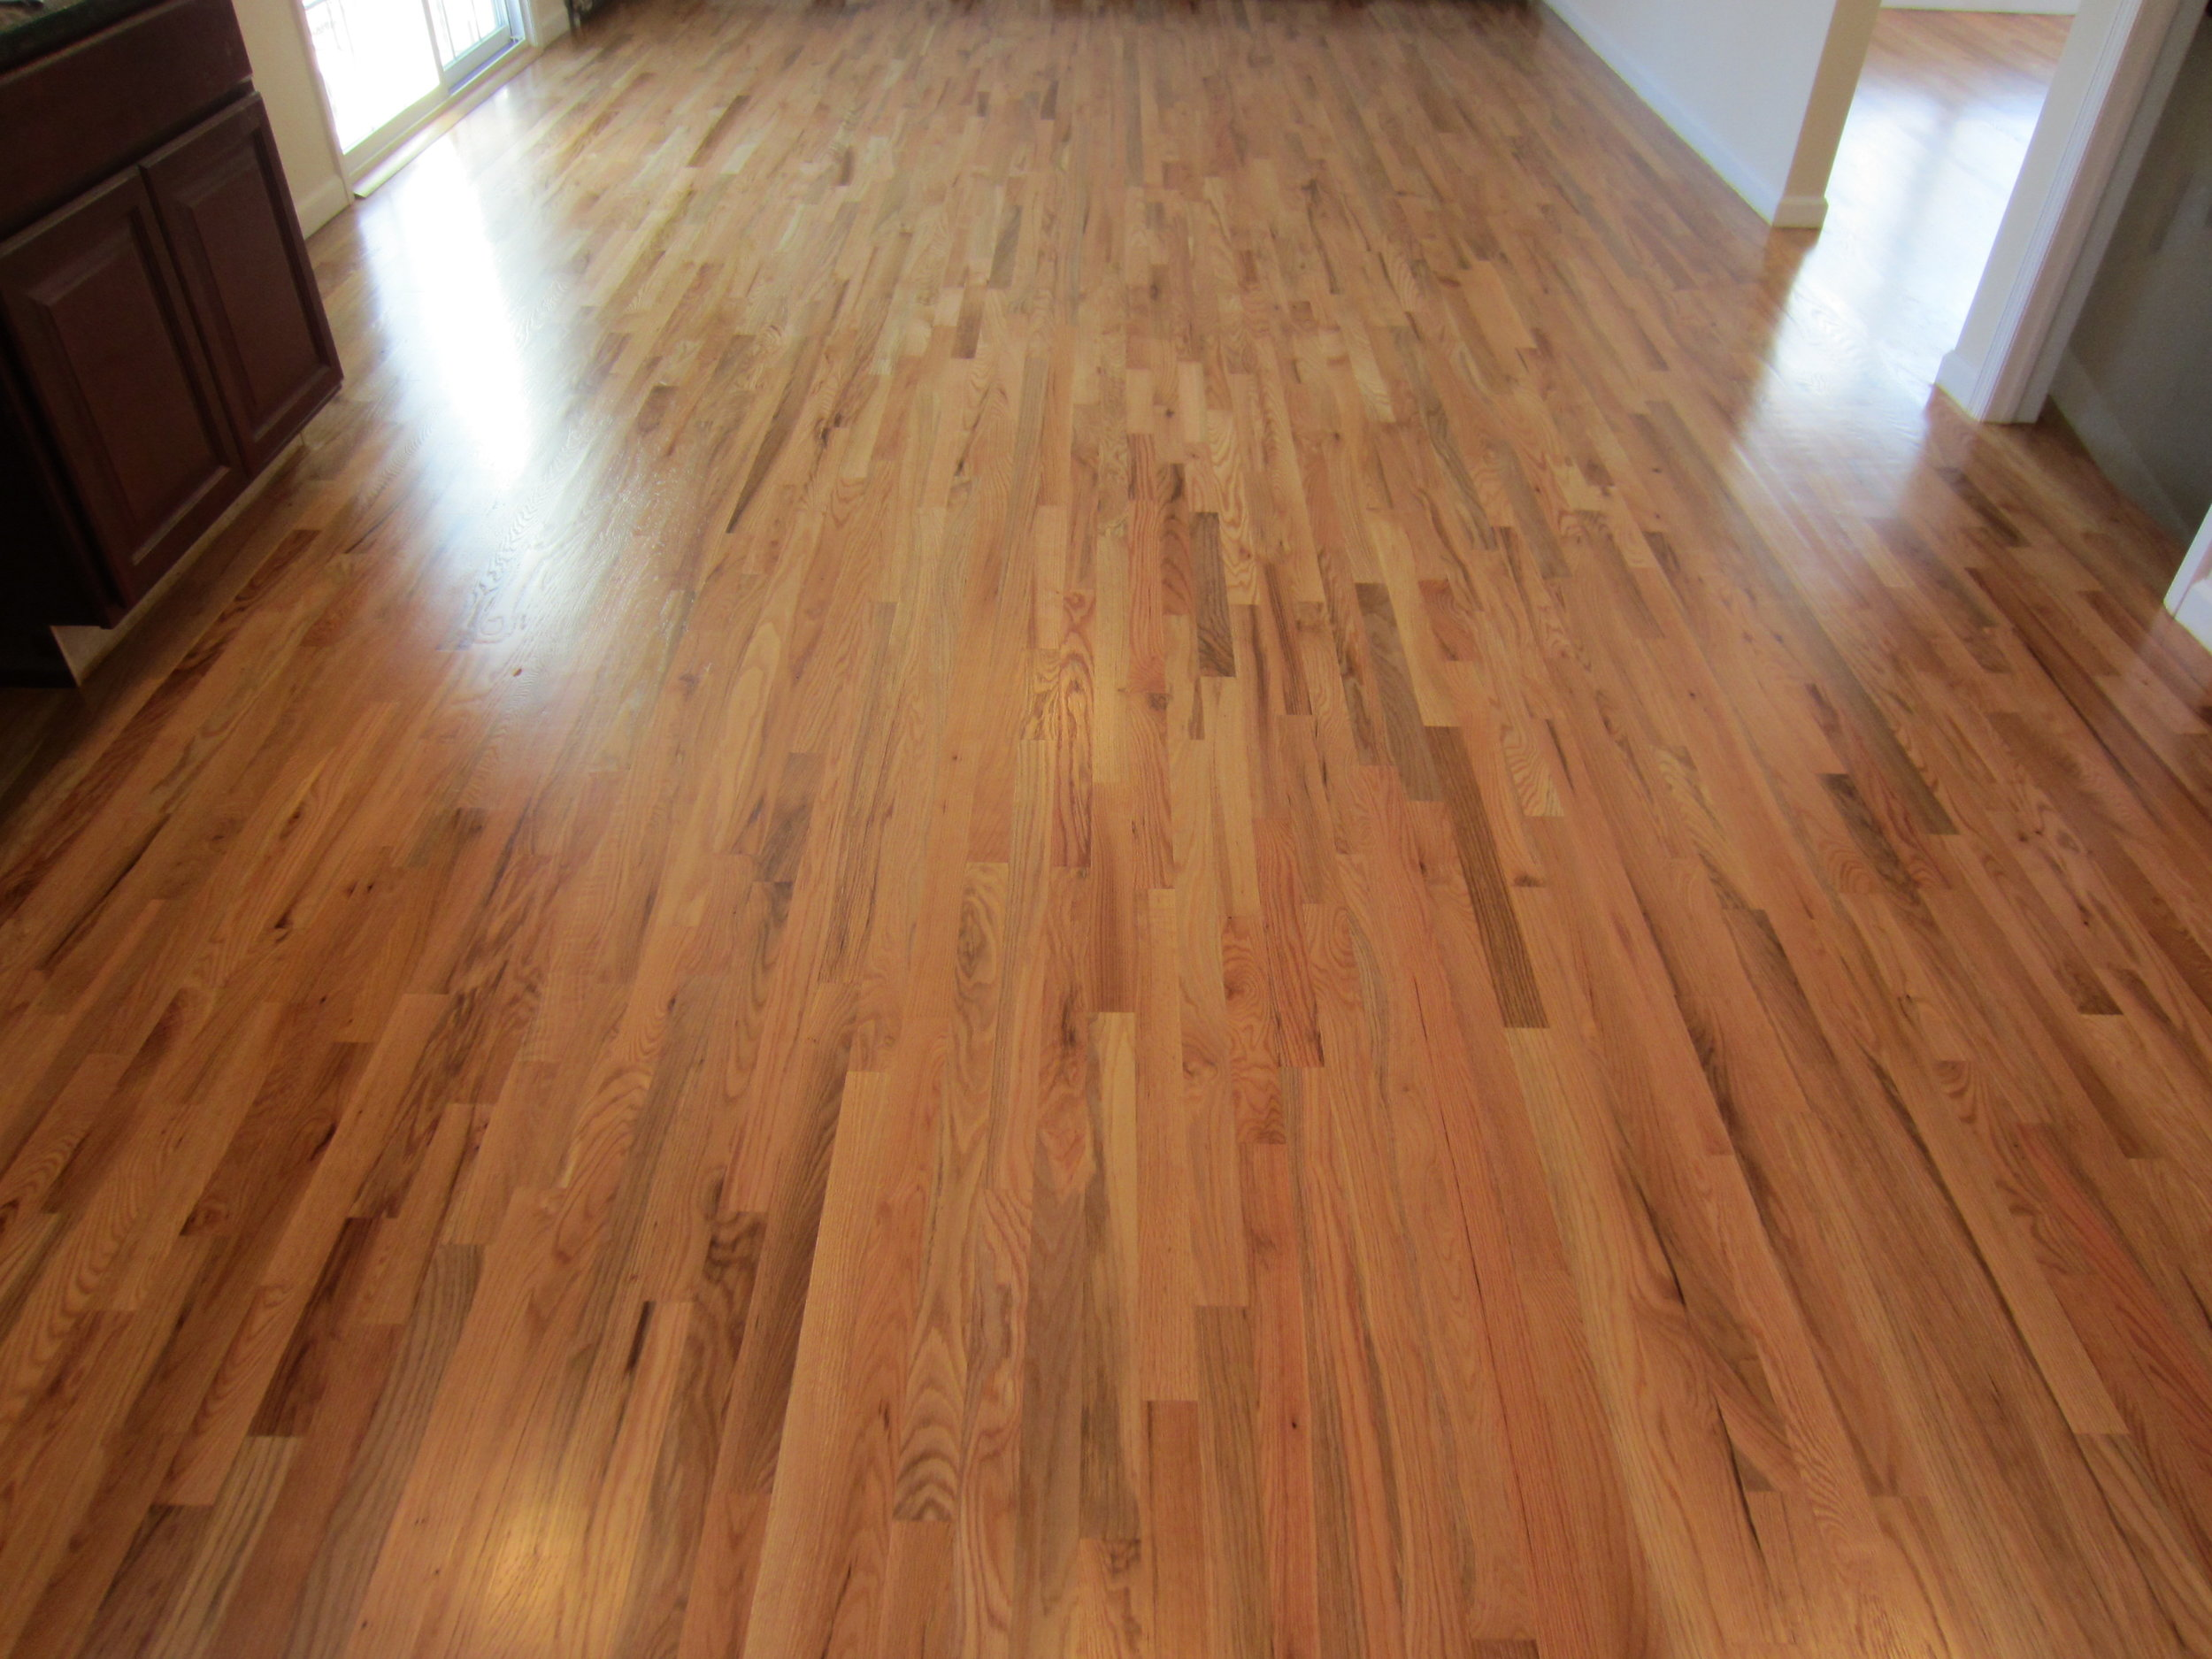 DIFFERENT GRADES OF HARDWOOD FLOORING — Valenti Flooring